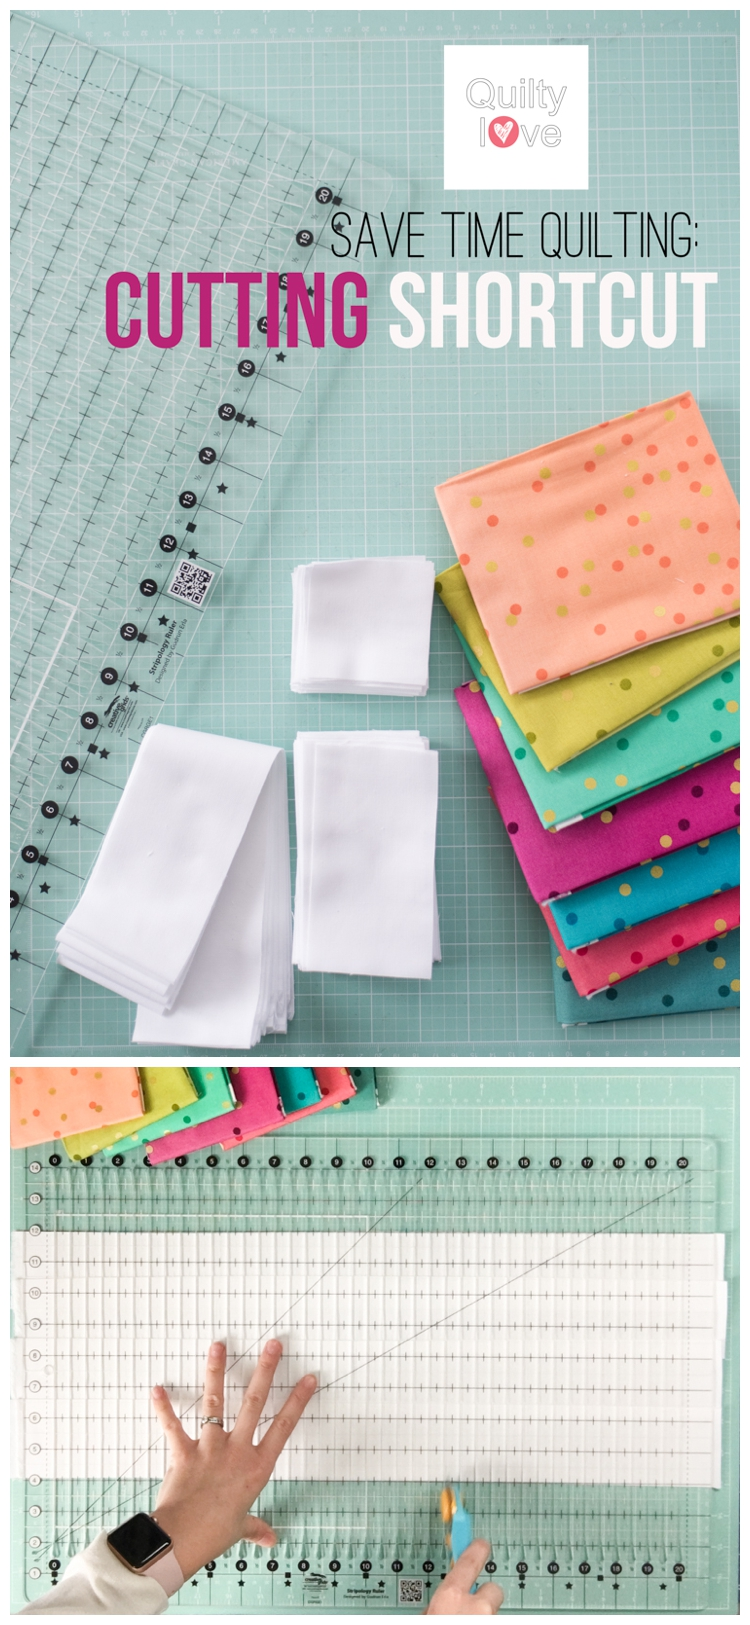 Save time quilting with this cutting shortcut